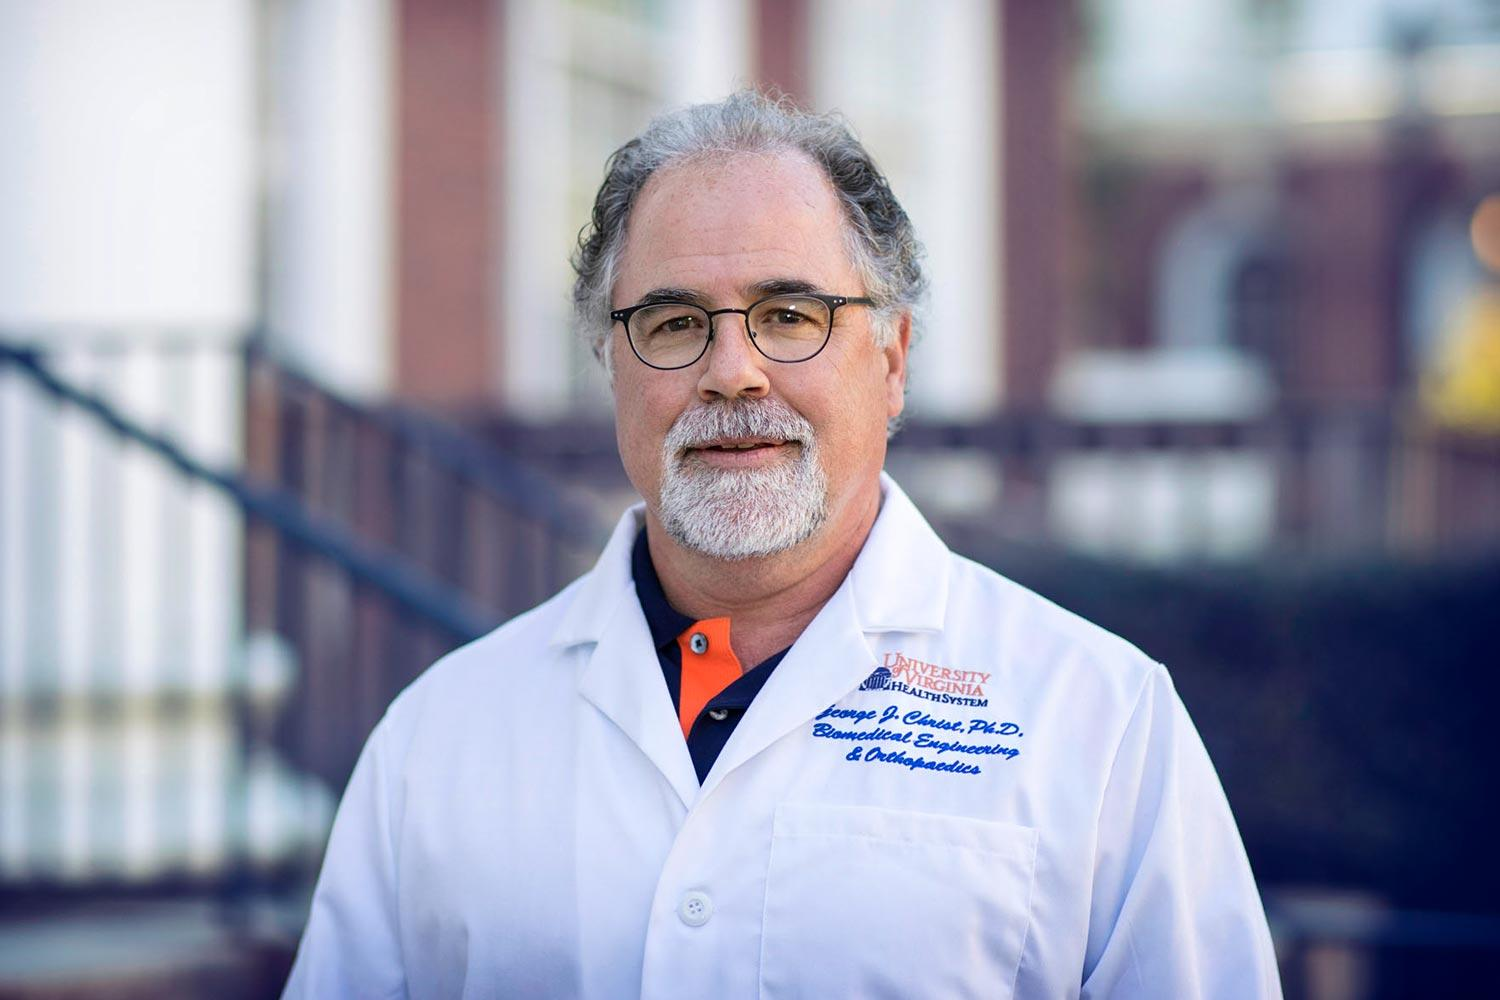 Biomedical engineer George Christ co-directs UVA's Center for Advanced Biomanufacturing, which is hosting the gathering.